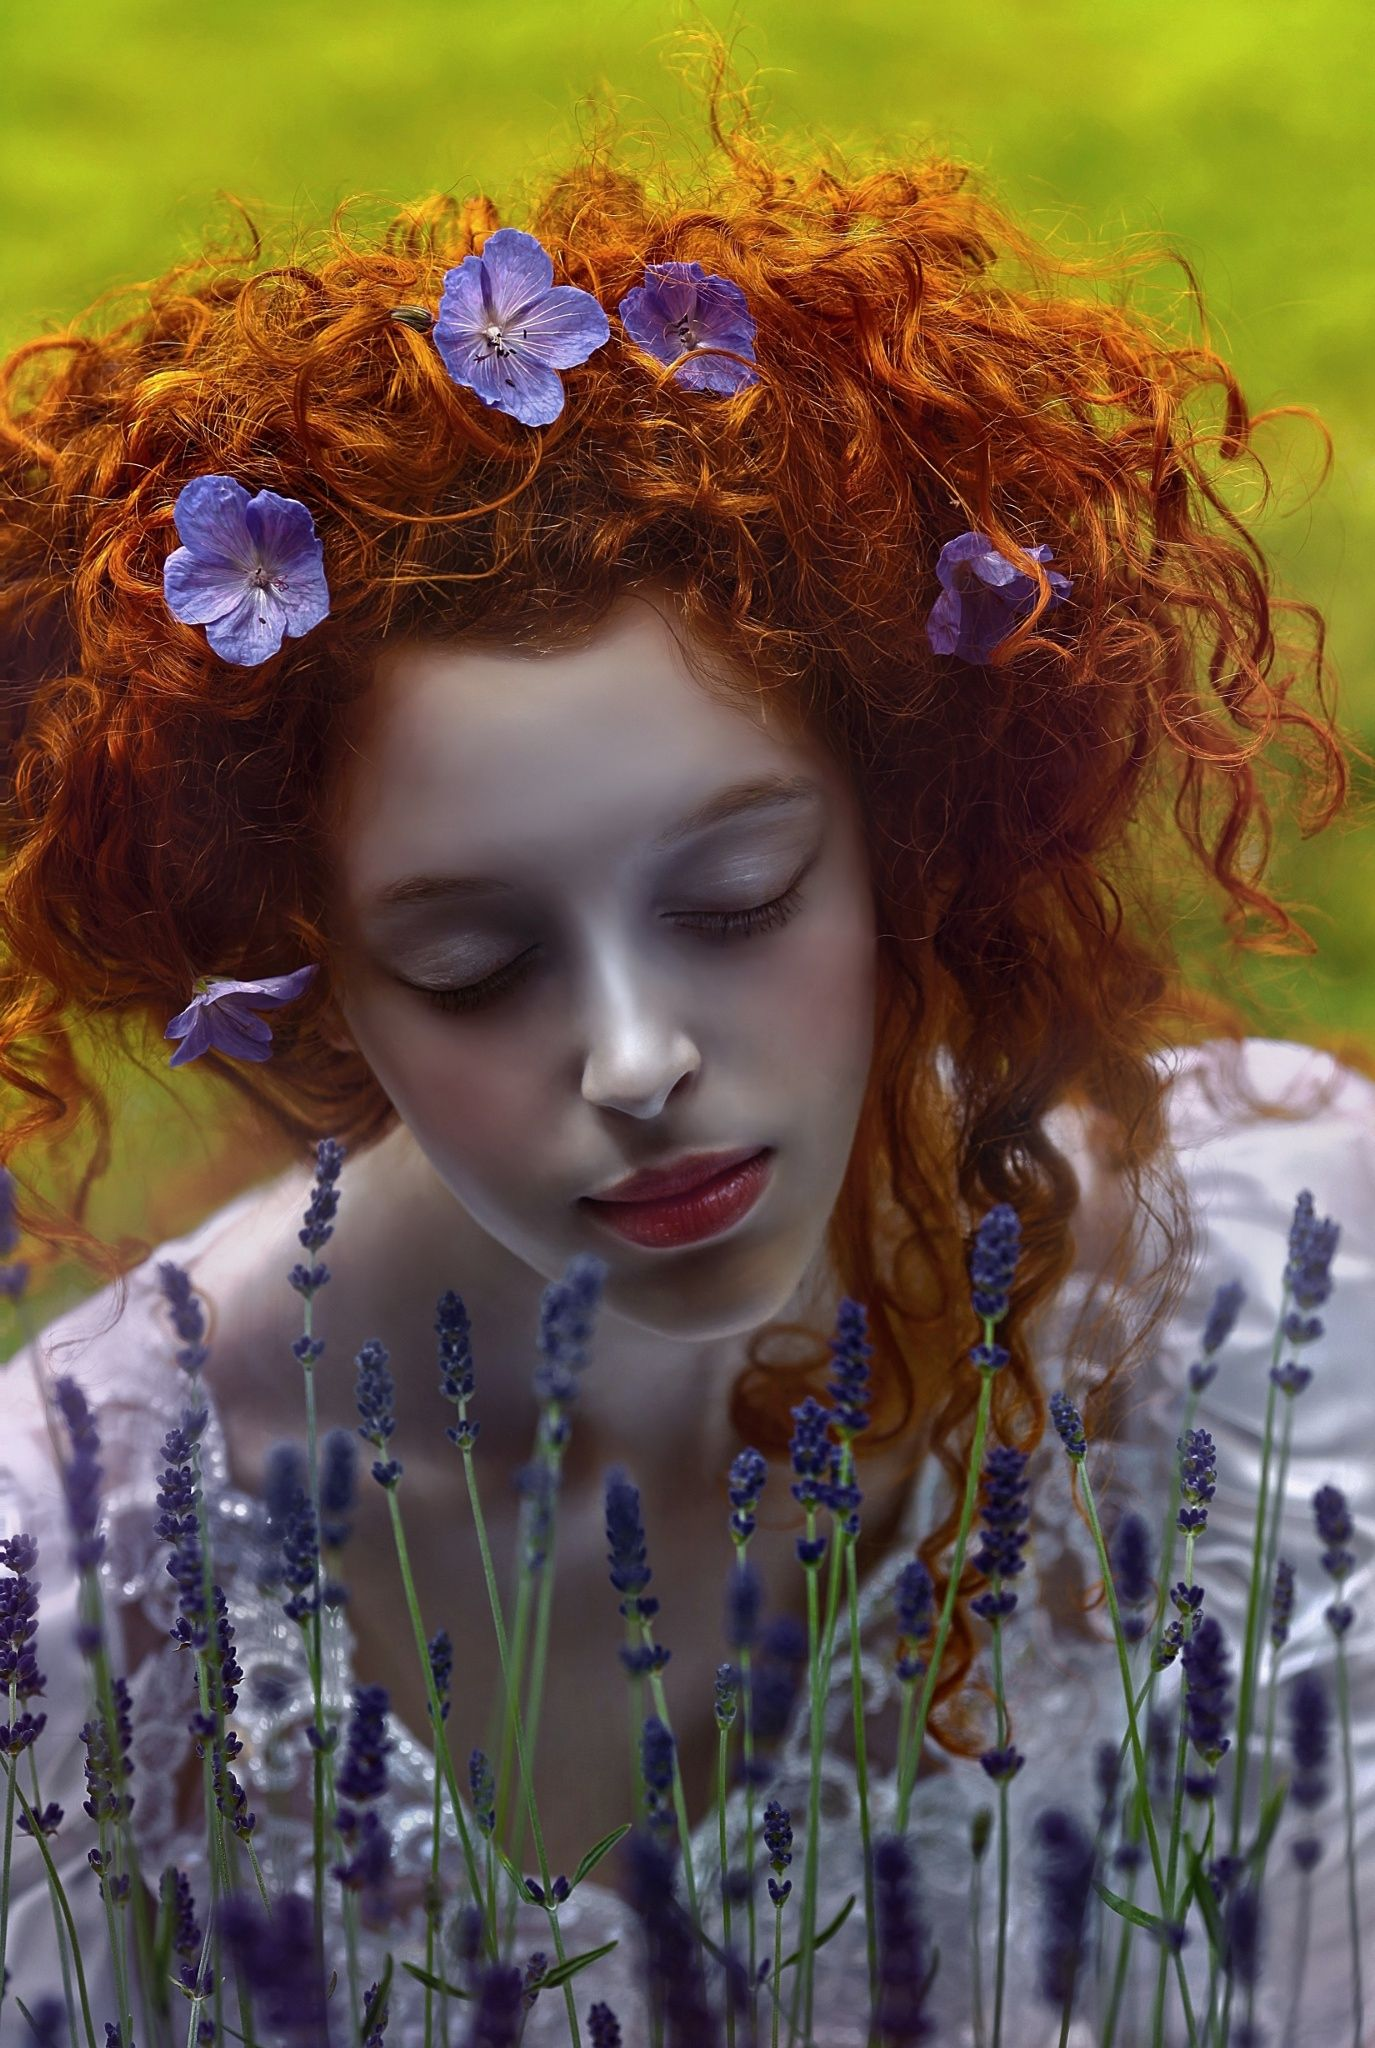 Dream by Agnieszka Lorek on 500px